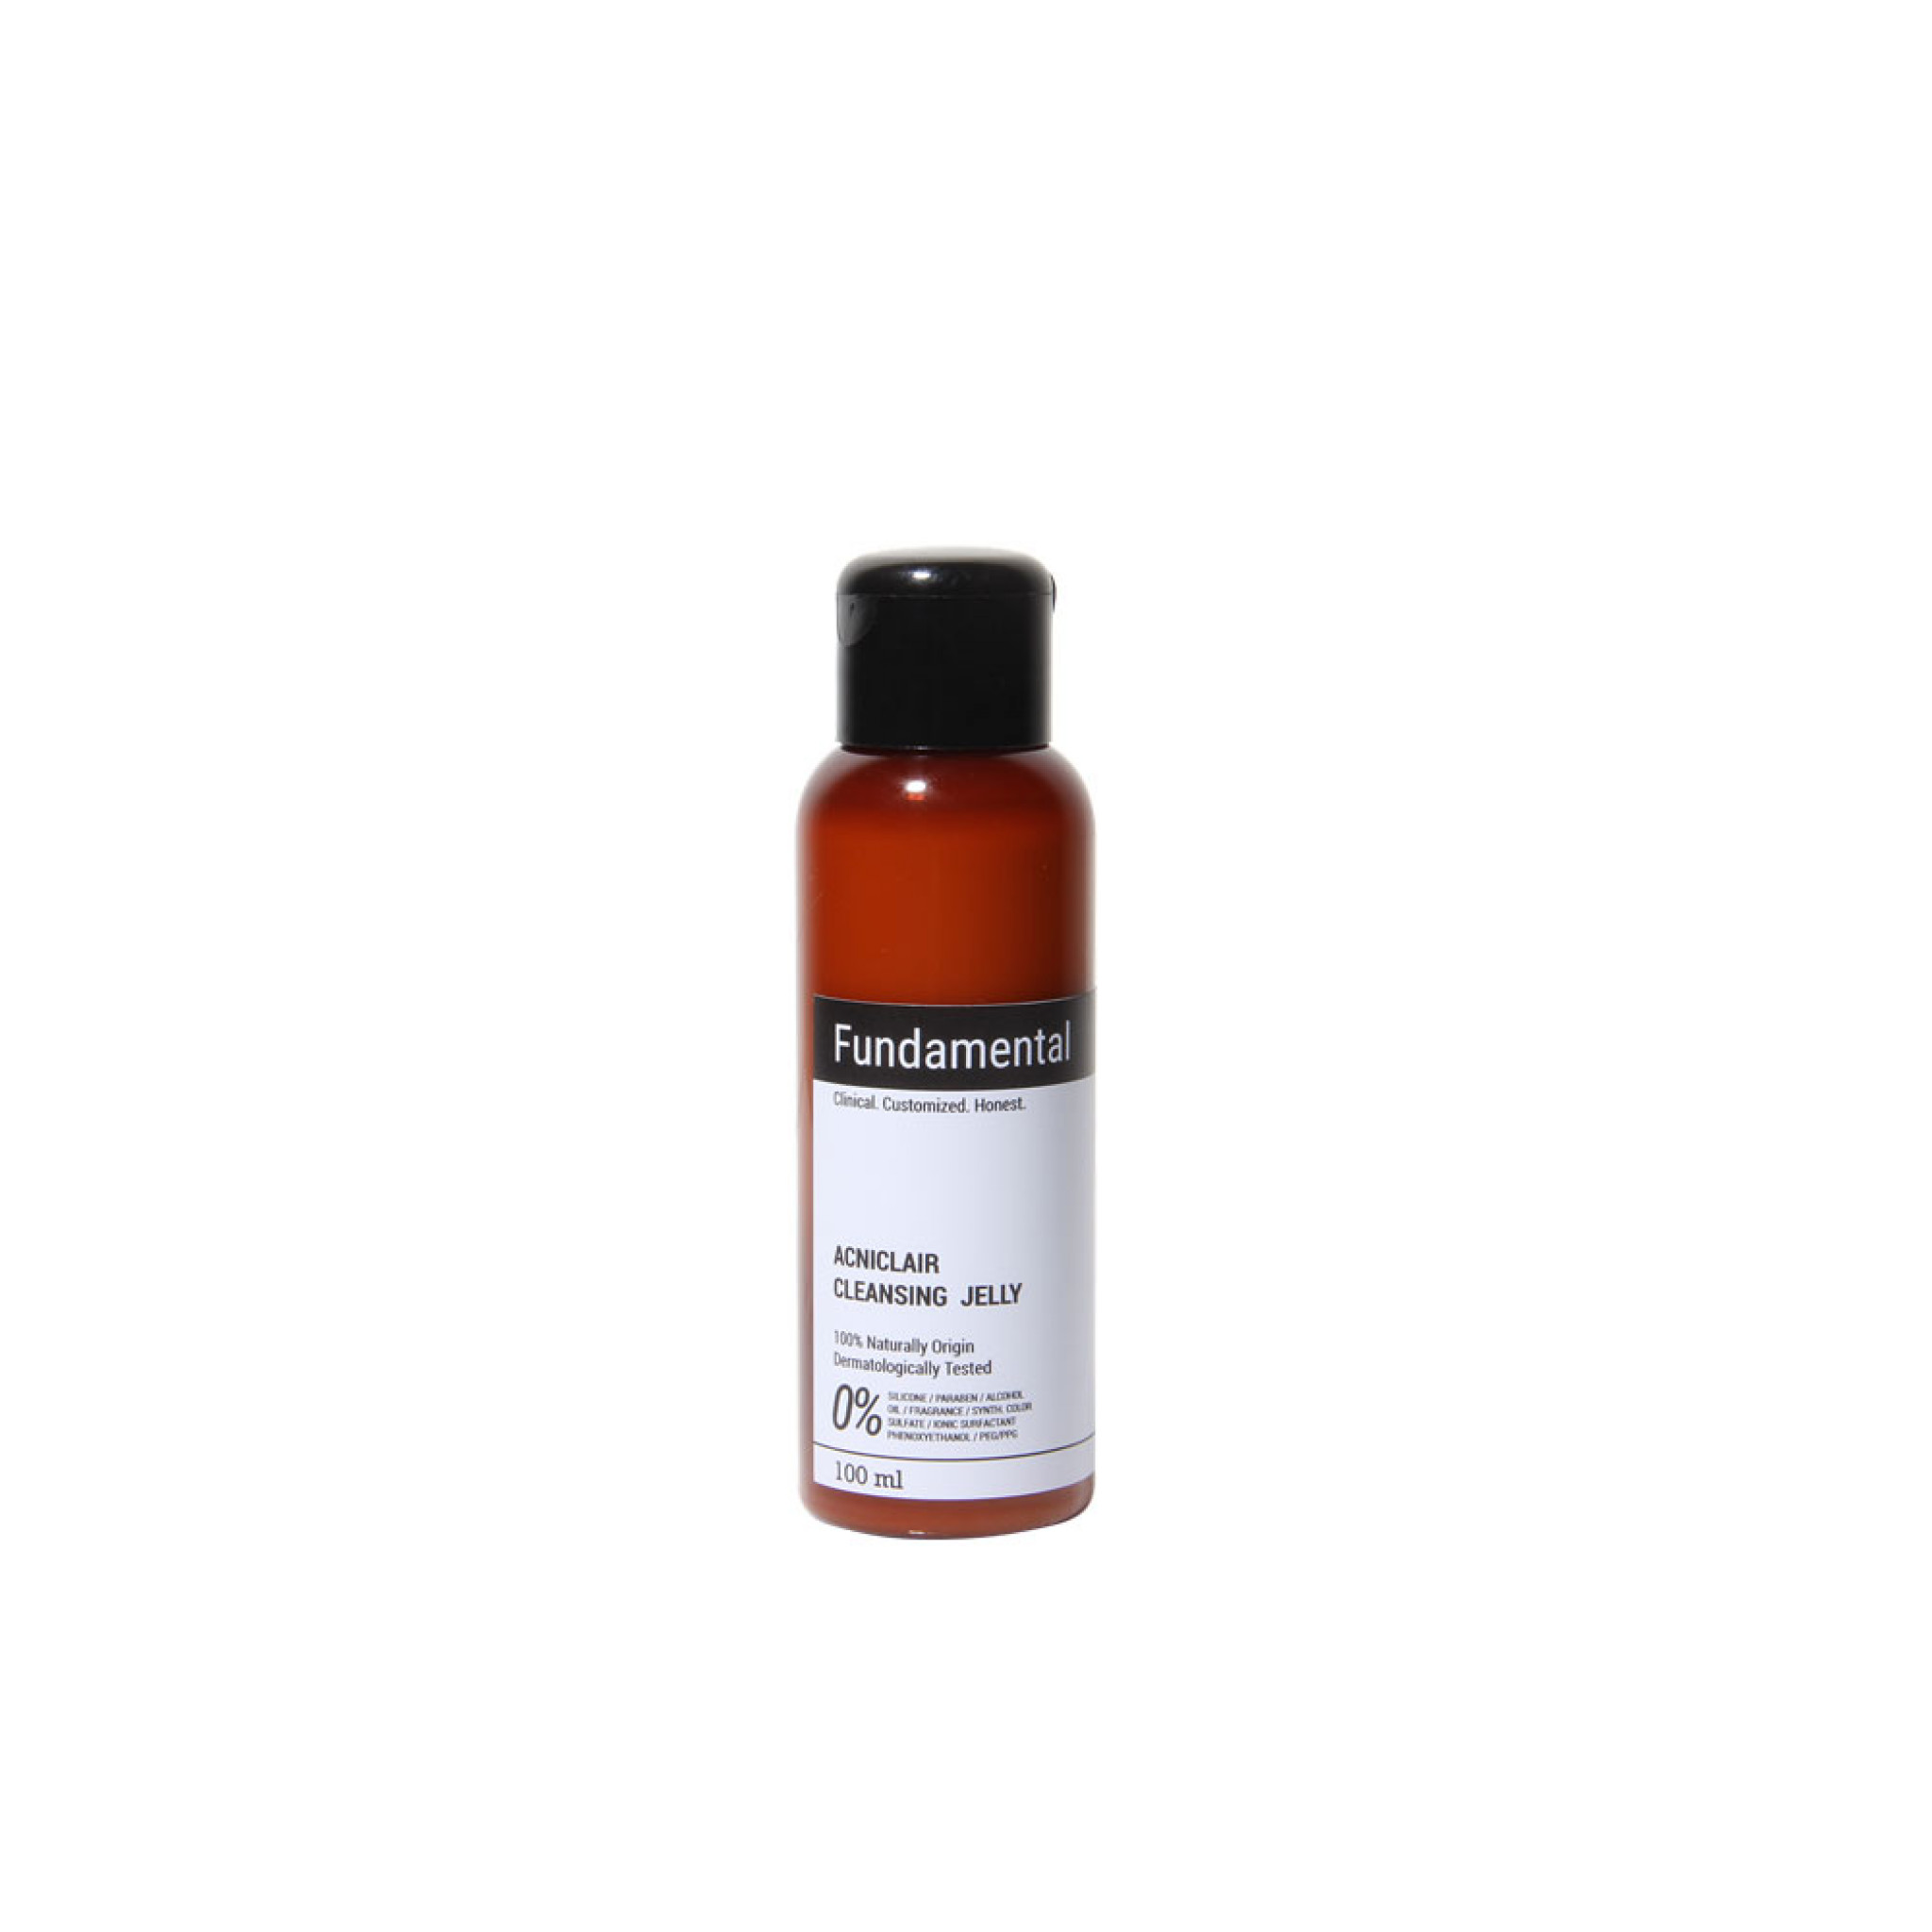 ACNICLAIR CLEANSING JELLY 100ml